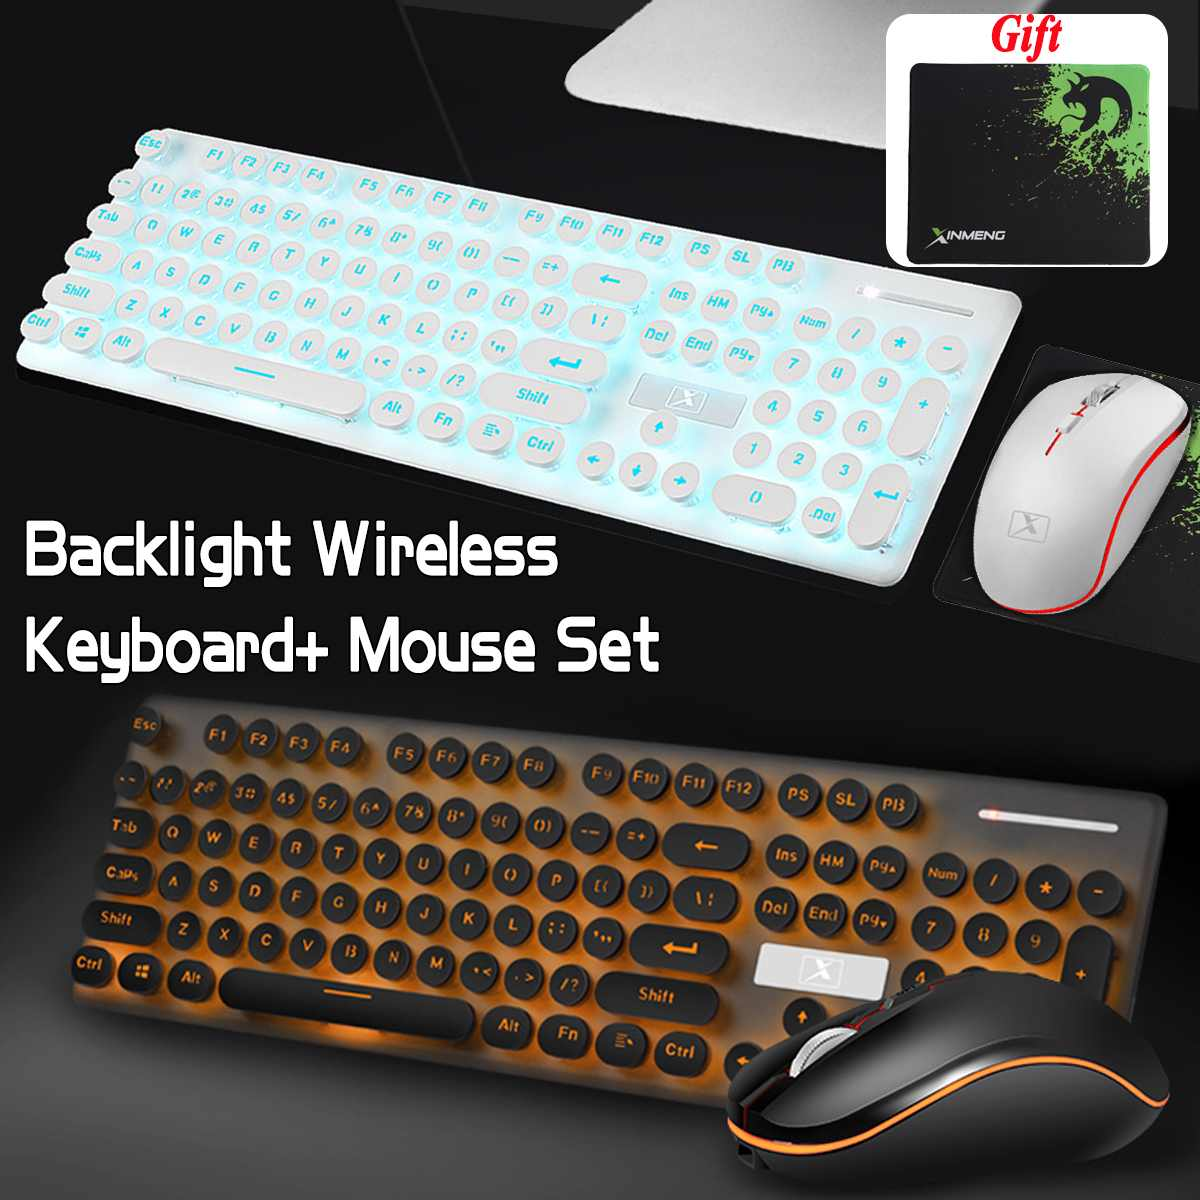 Multimedia 2.4G Wireless Keyboard Mouse Combos Rechargeable Mute LED Backlit Mechanical Gaming Portable Keyboard Mouse Pad Set